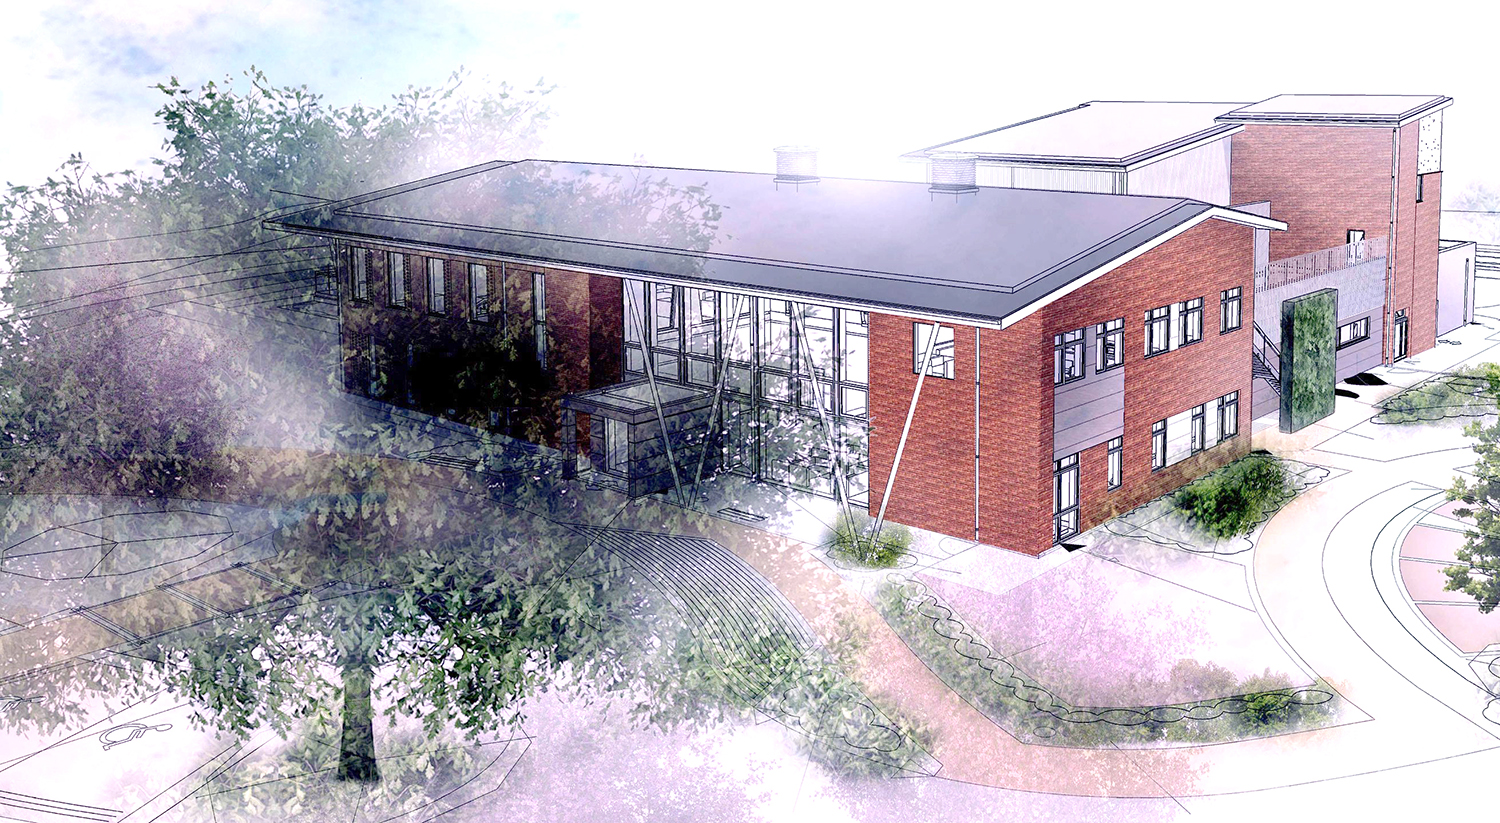 Work Begins on Northern Proton Beam Therapy Centre